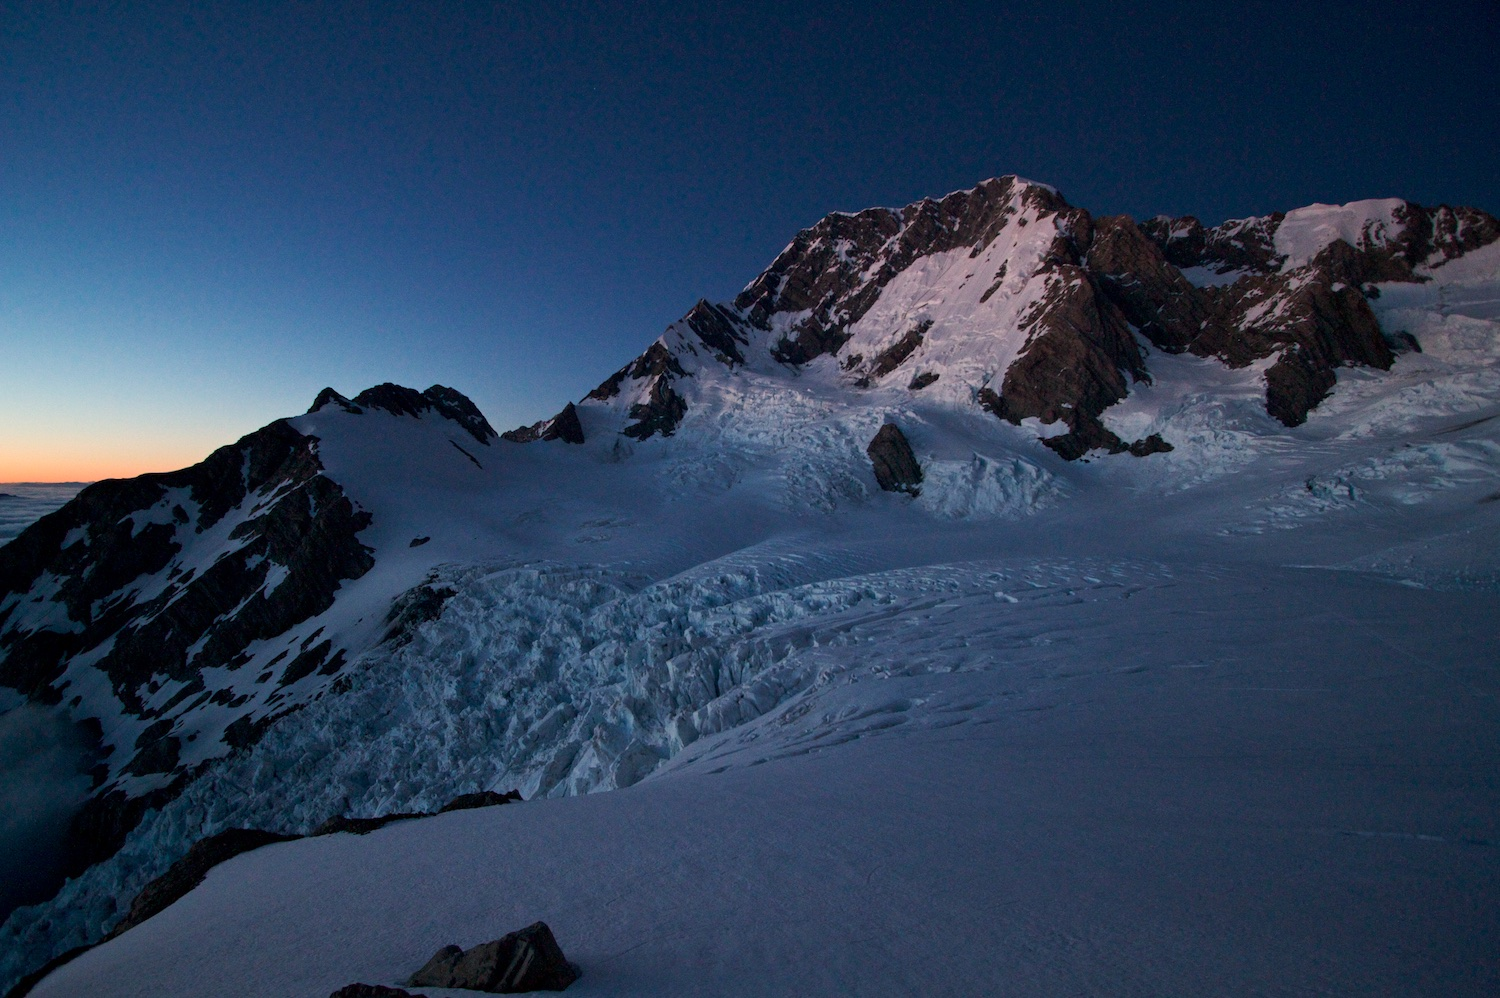 Early morning from Plateau Hut in the Tasman Valley